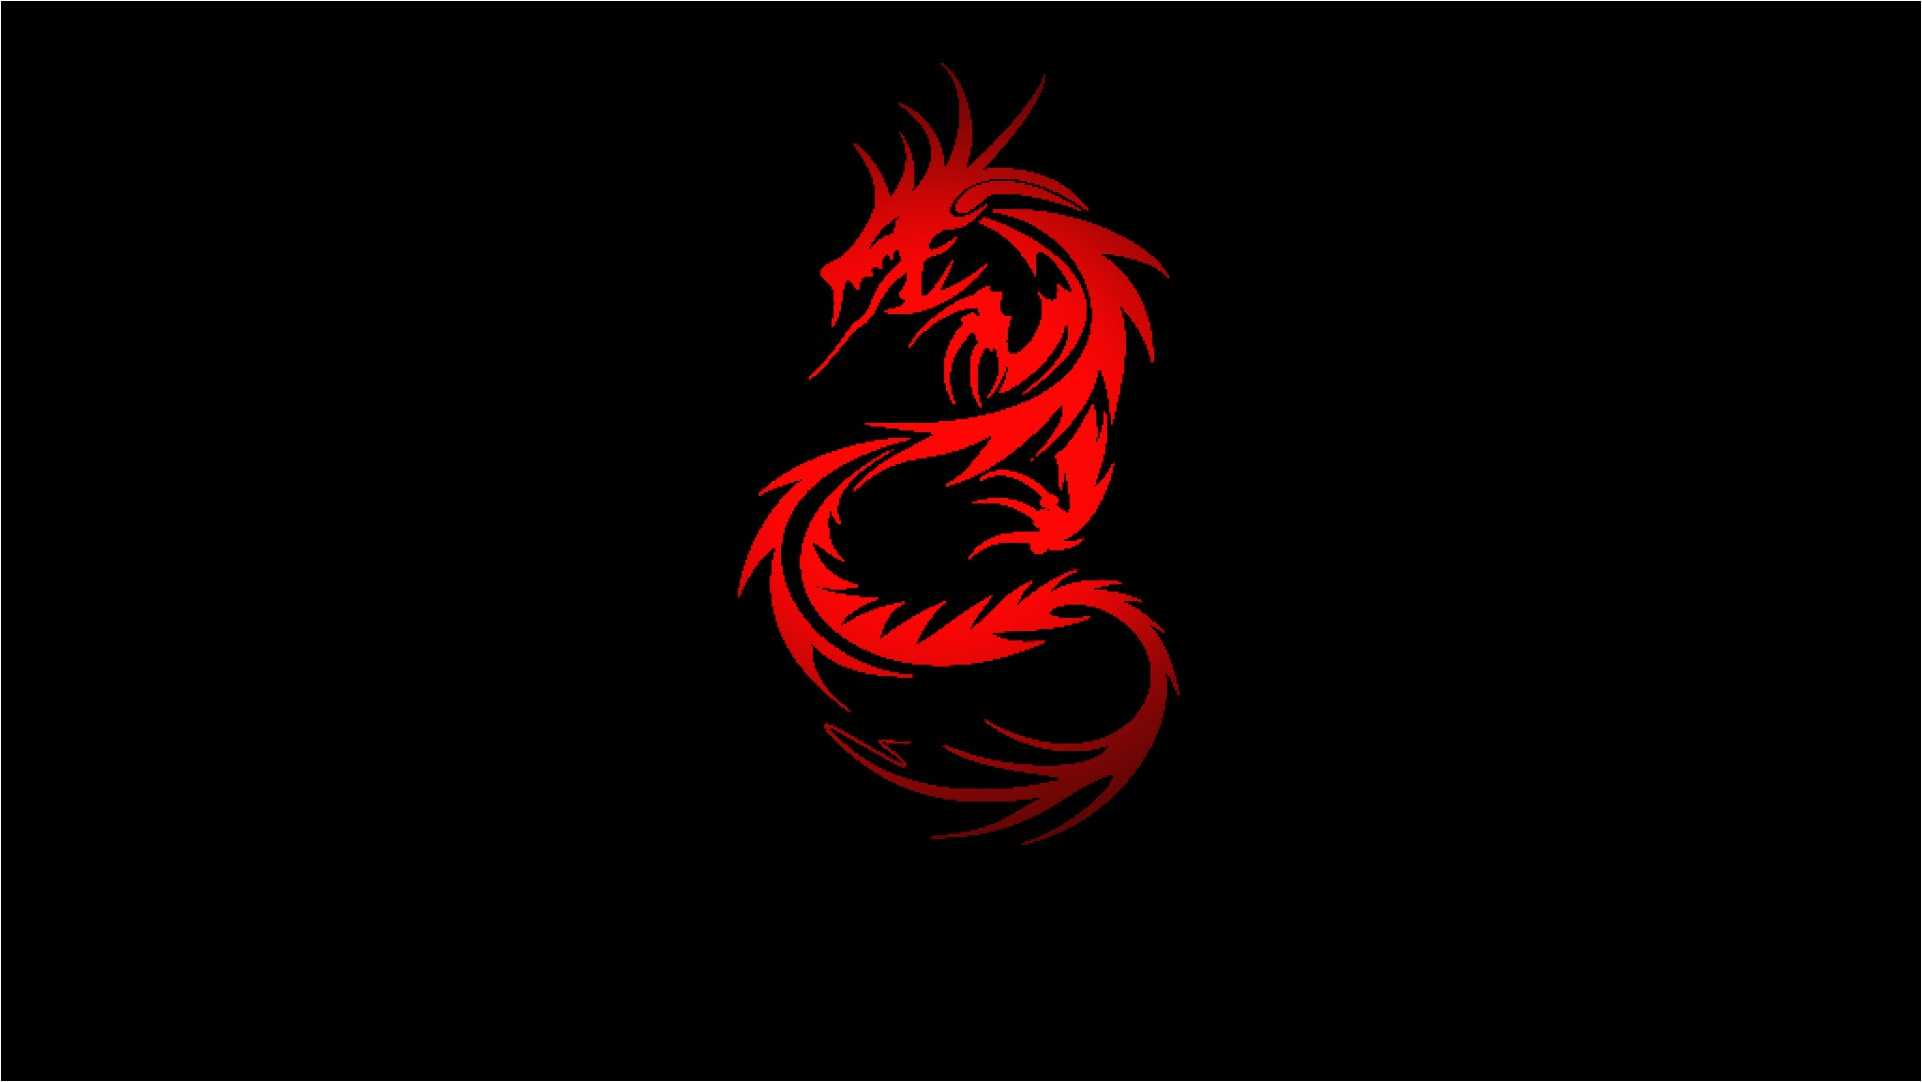 Wallpaper Red Dragon Images